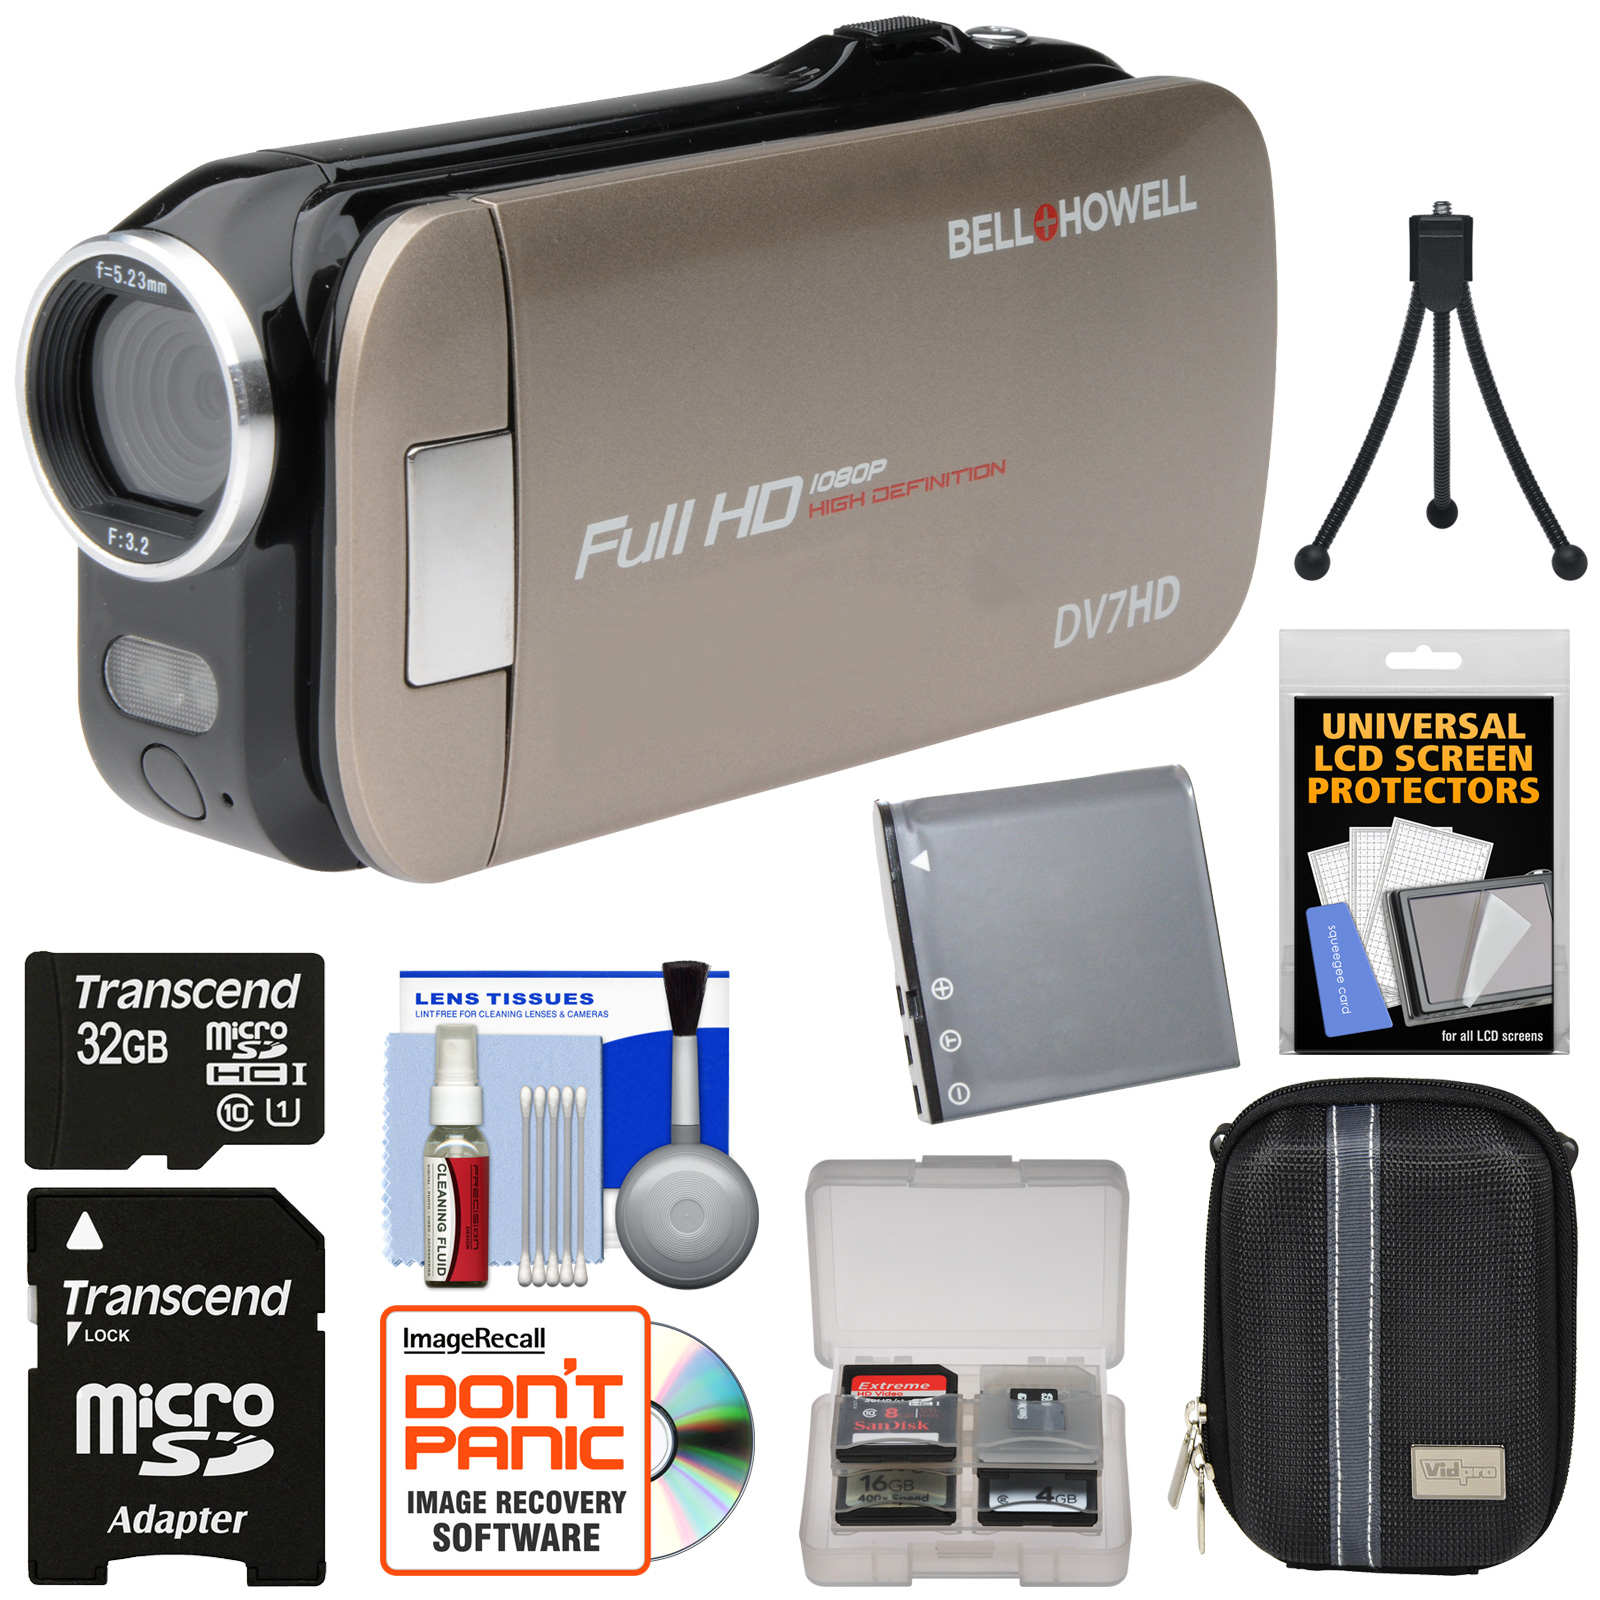 Bell & Howell Slice2 DV7HD 1080p HD Slim Video Camera Camcorder (Champagne) with 32GB Card + Battery + Case + Tripod + Kit